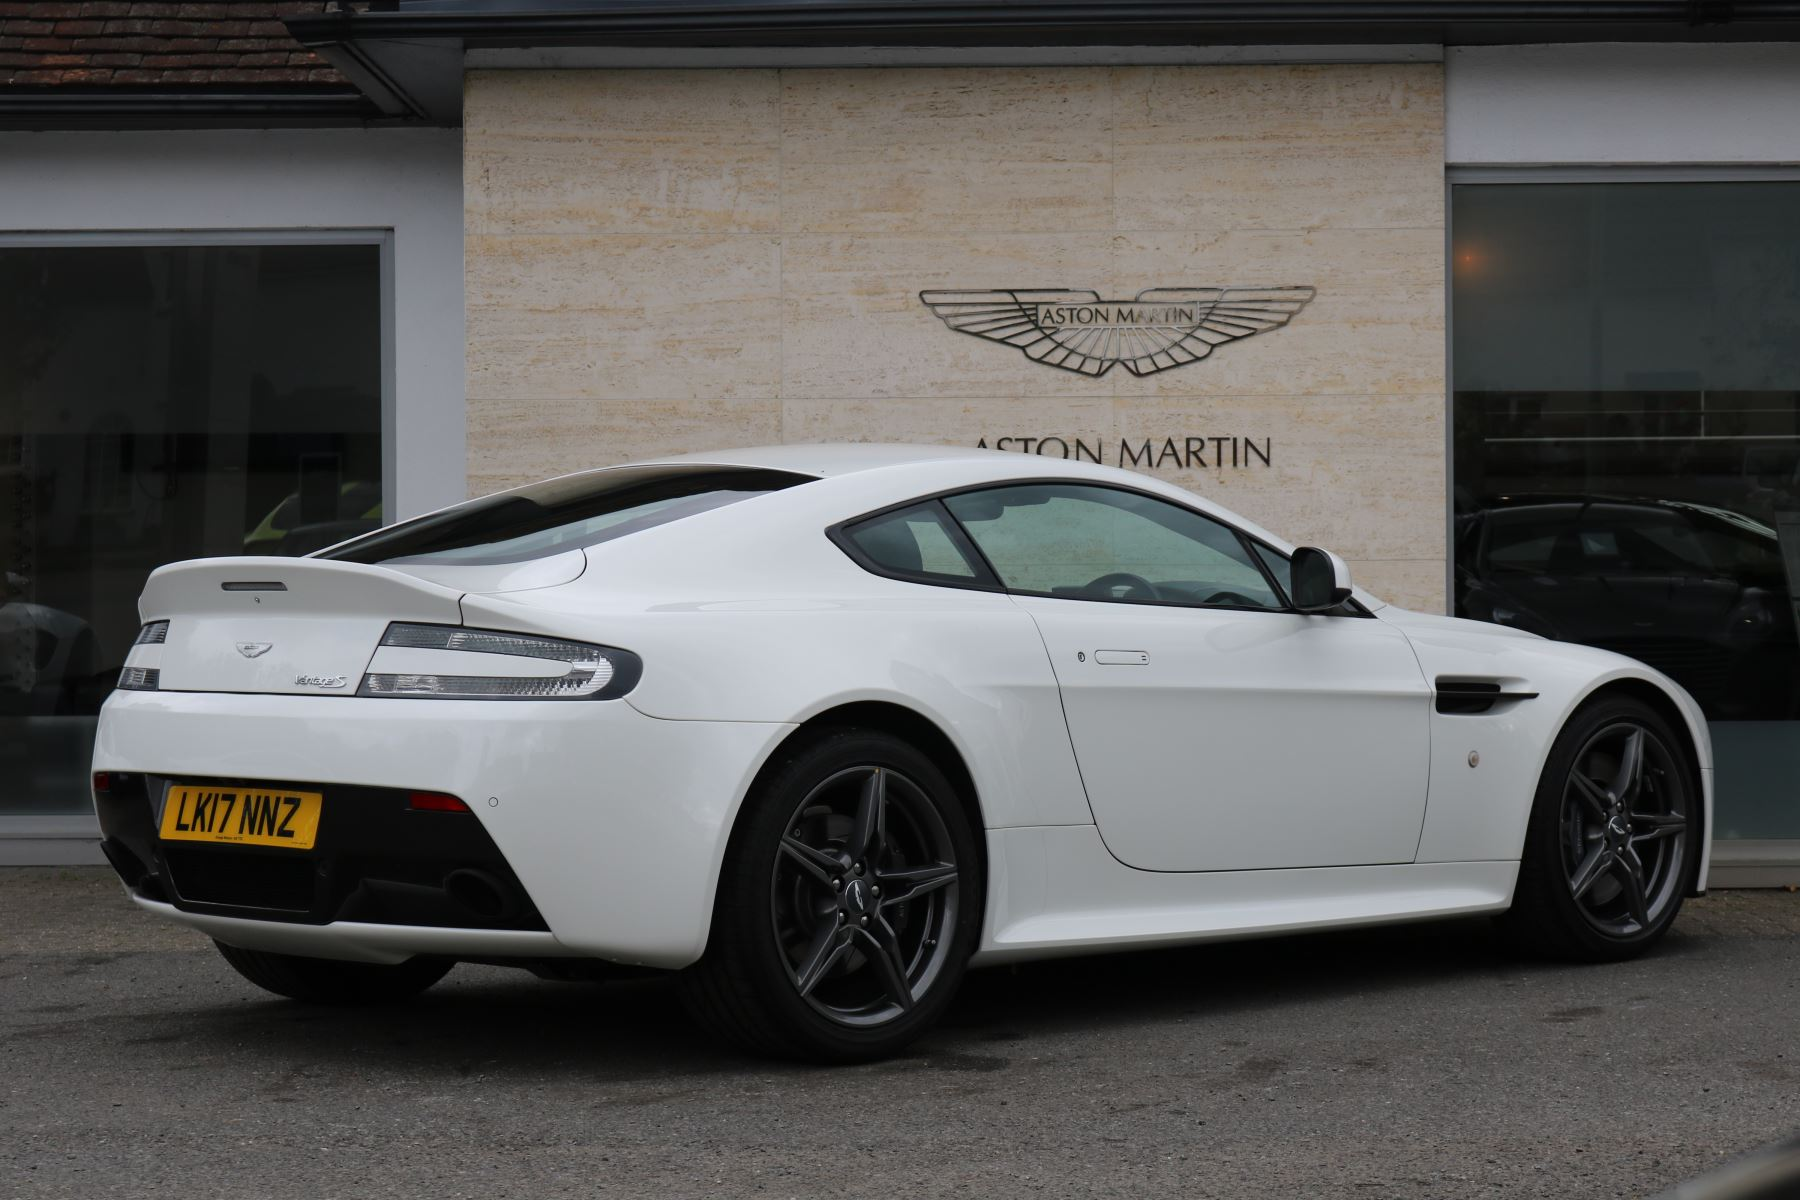 Aston Martin V Vantage S Coupe S Dr Door Coupe At - Aston martin v8 vantage s